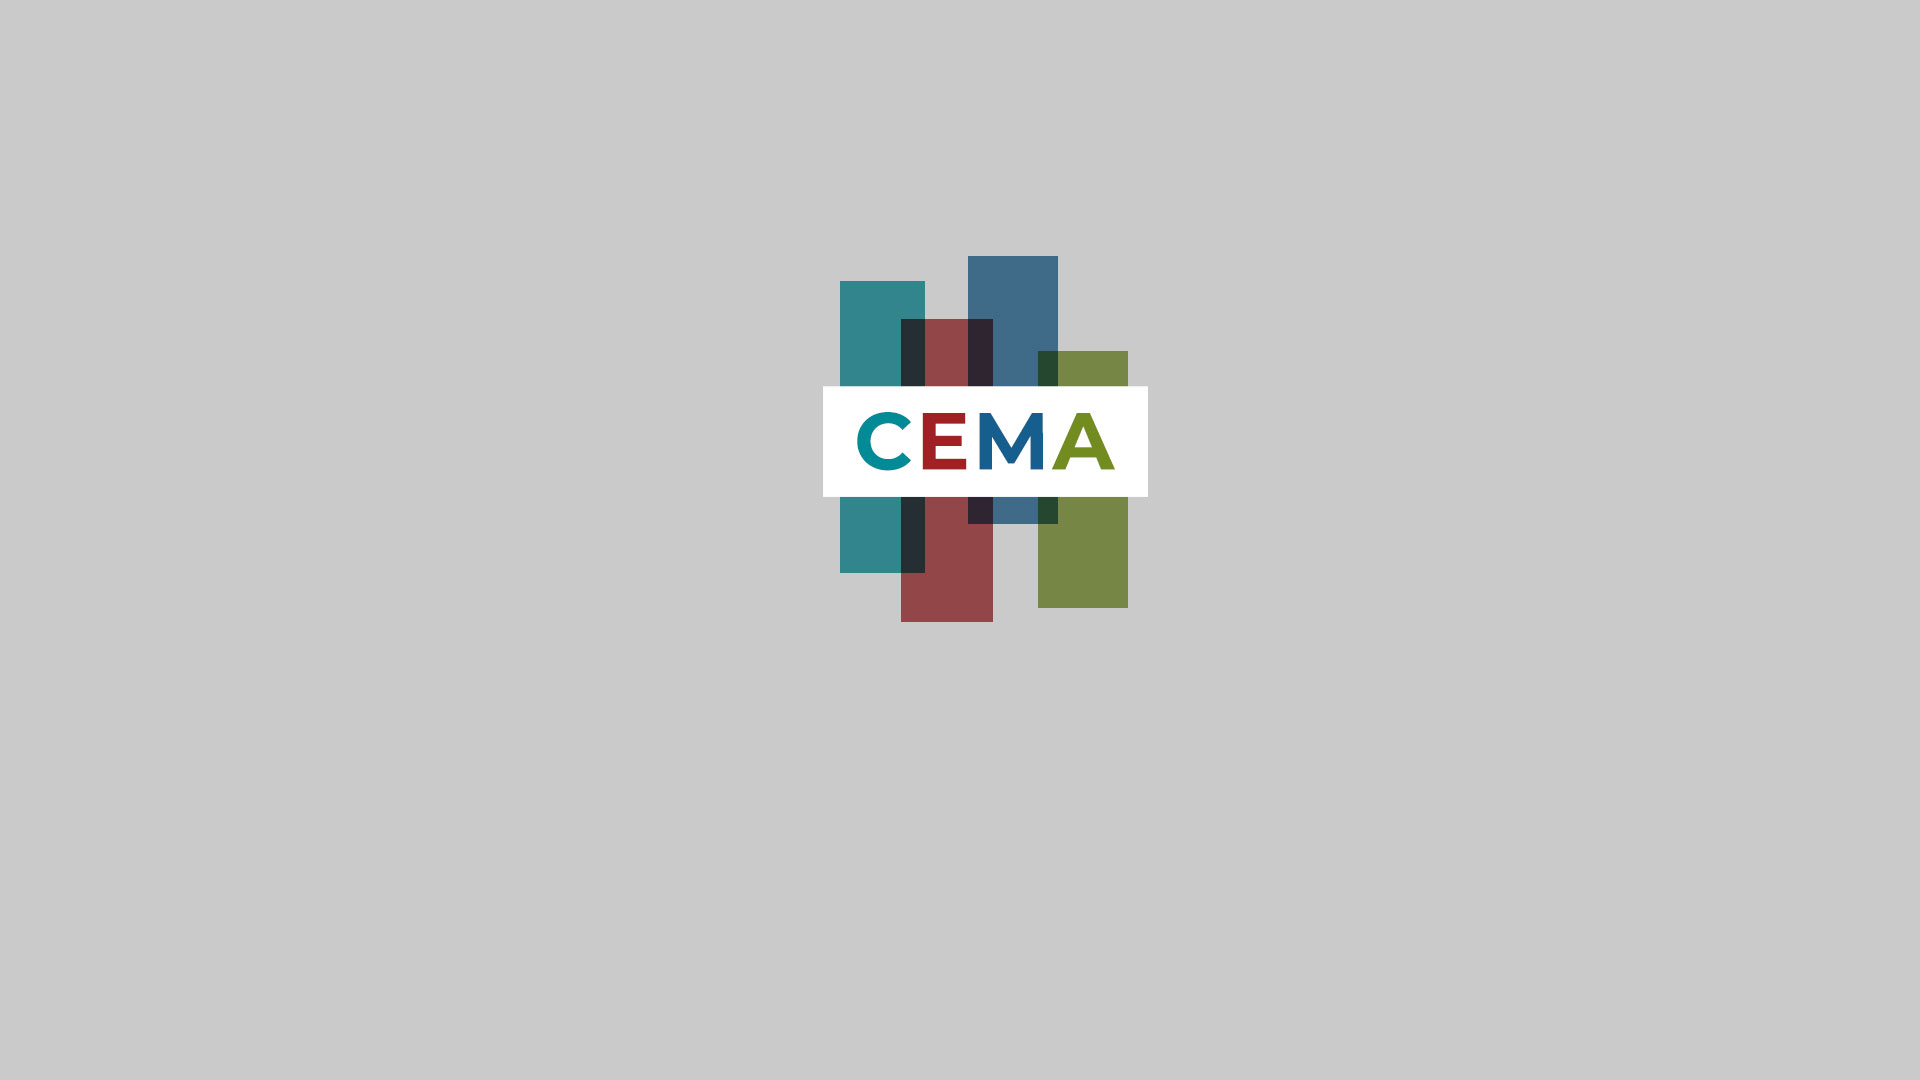 2021 CEMA Board Members Announced